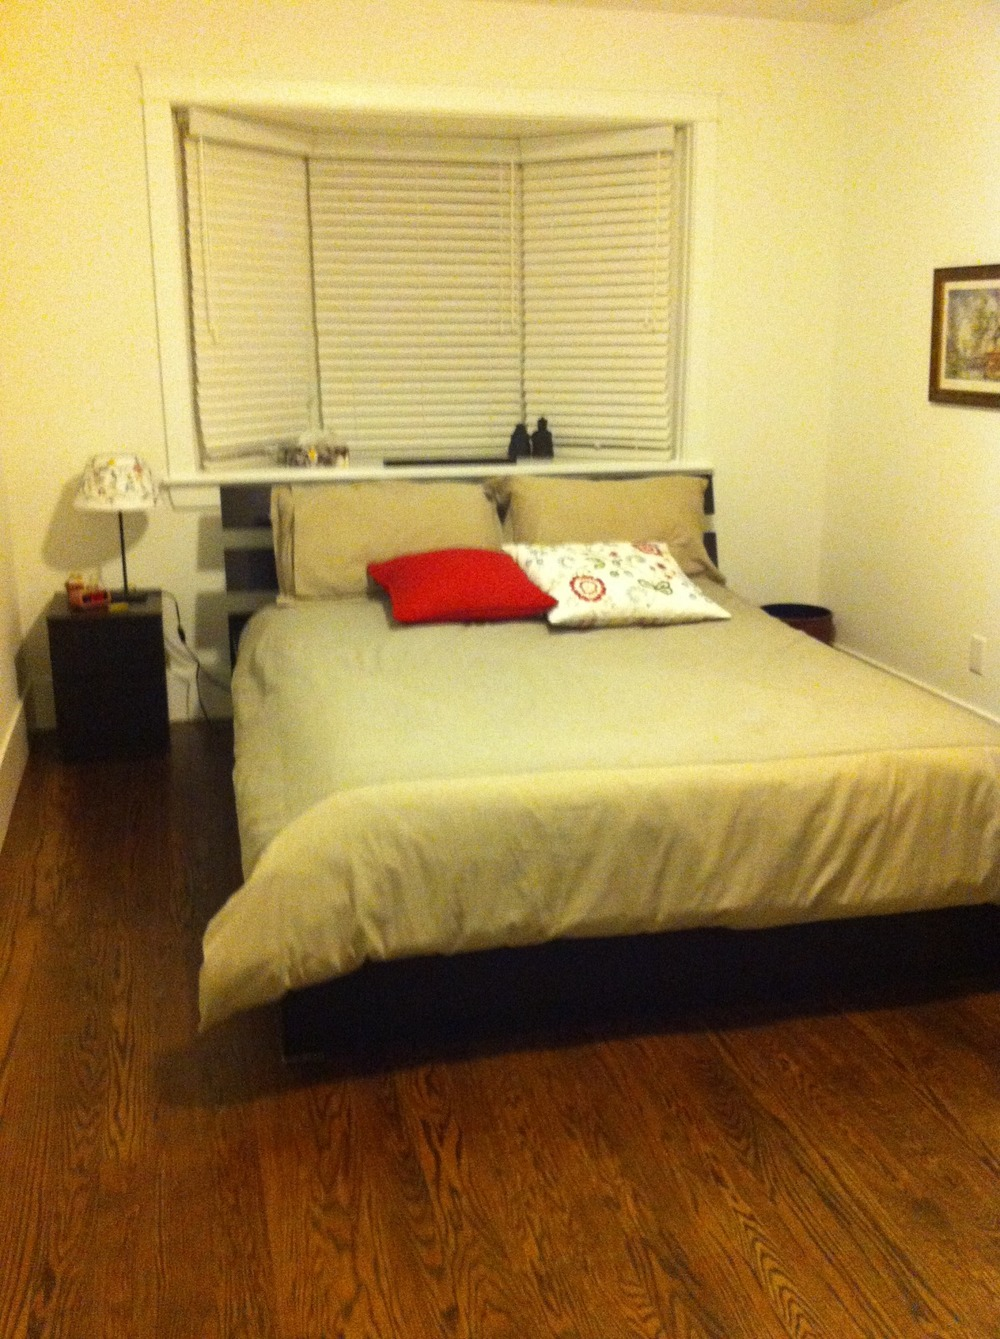 second bedroom.jpg